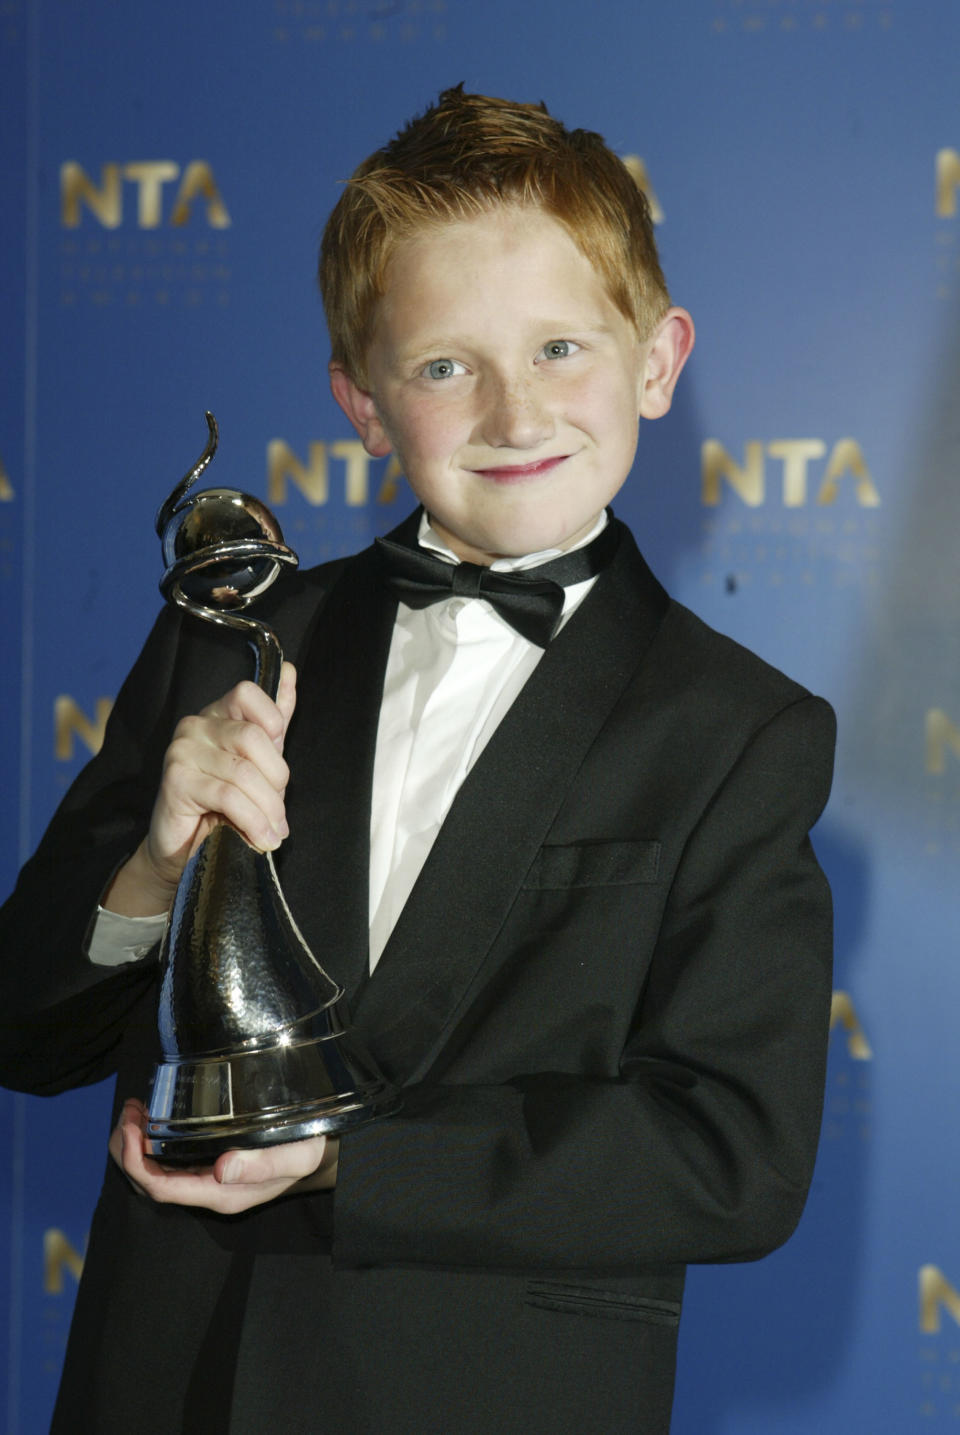 LONDON - OCTOBER 26: Actor Sam Aston poses with his award for Most Popular Newcomer at the 10th Anniversary National Television Awards at the Royal Albert Hall on October 26, 2004 in London. The star-studded awards ceremony awards prizes as voted for by members of the public. (Photo by Dave Hogan/Getty Images)